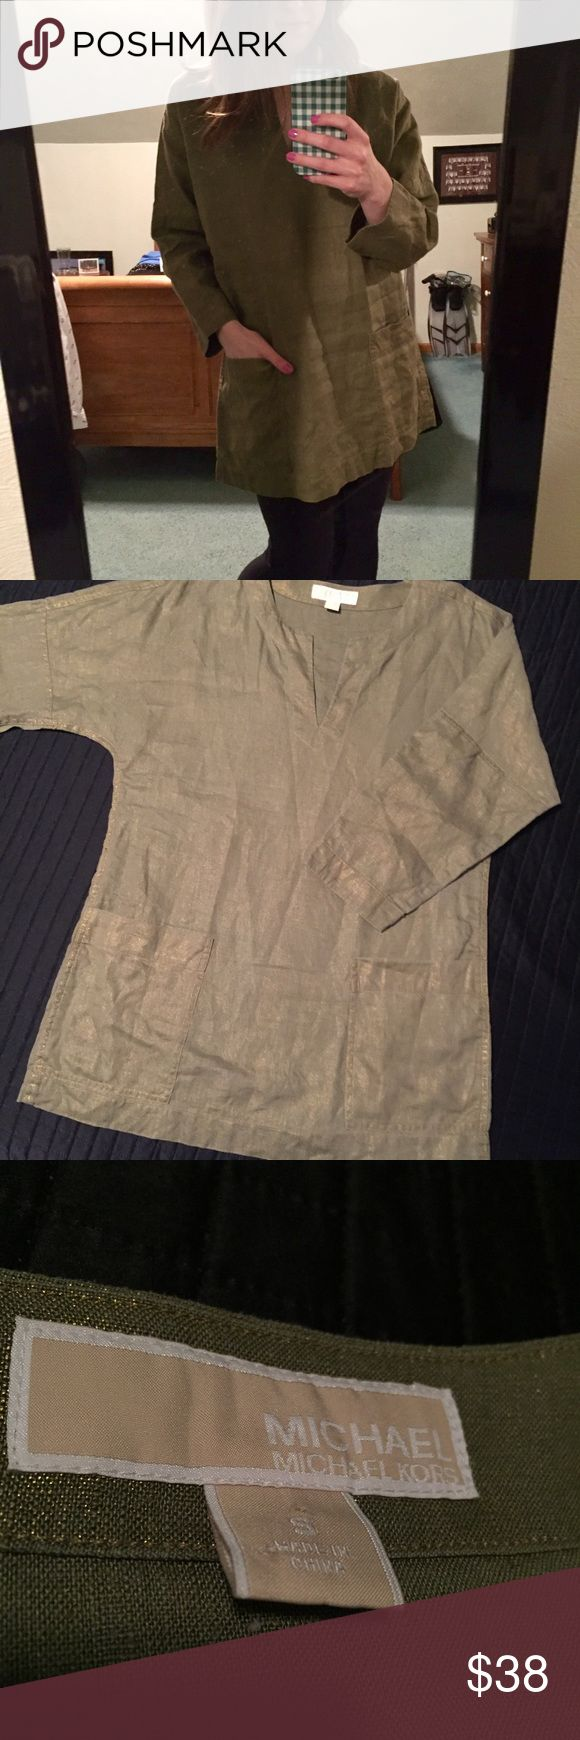 Michael Kors Linen Smock Tunic Top Michael Kors army green with subtle gold shimmer smocked linen top with v-neckline and pockets! Sleeves are almost full length. Flawless condition!! Very versatile, can be paired with leggings or belted, lots of possibilities for styling this piece! MICHAEL Michael Kors Tops Tunics